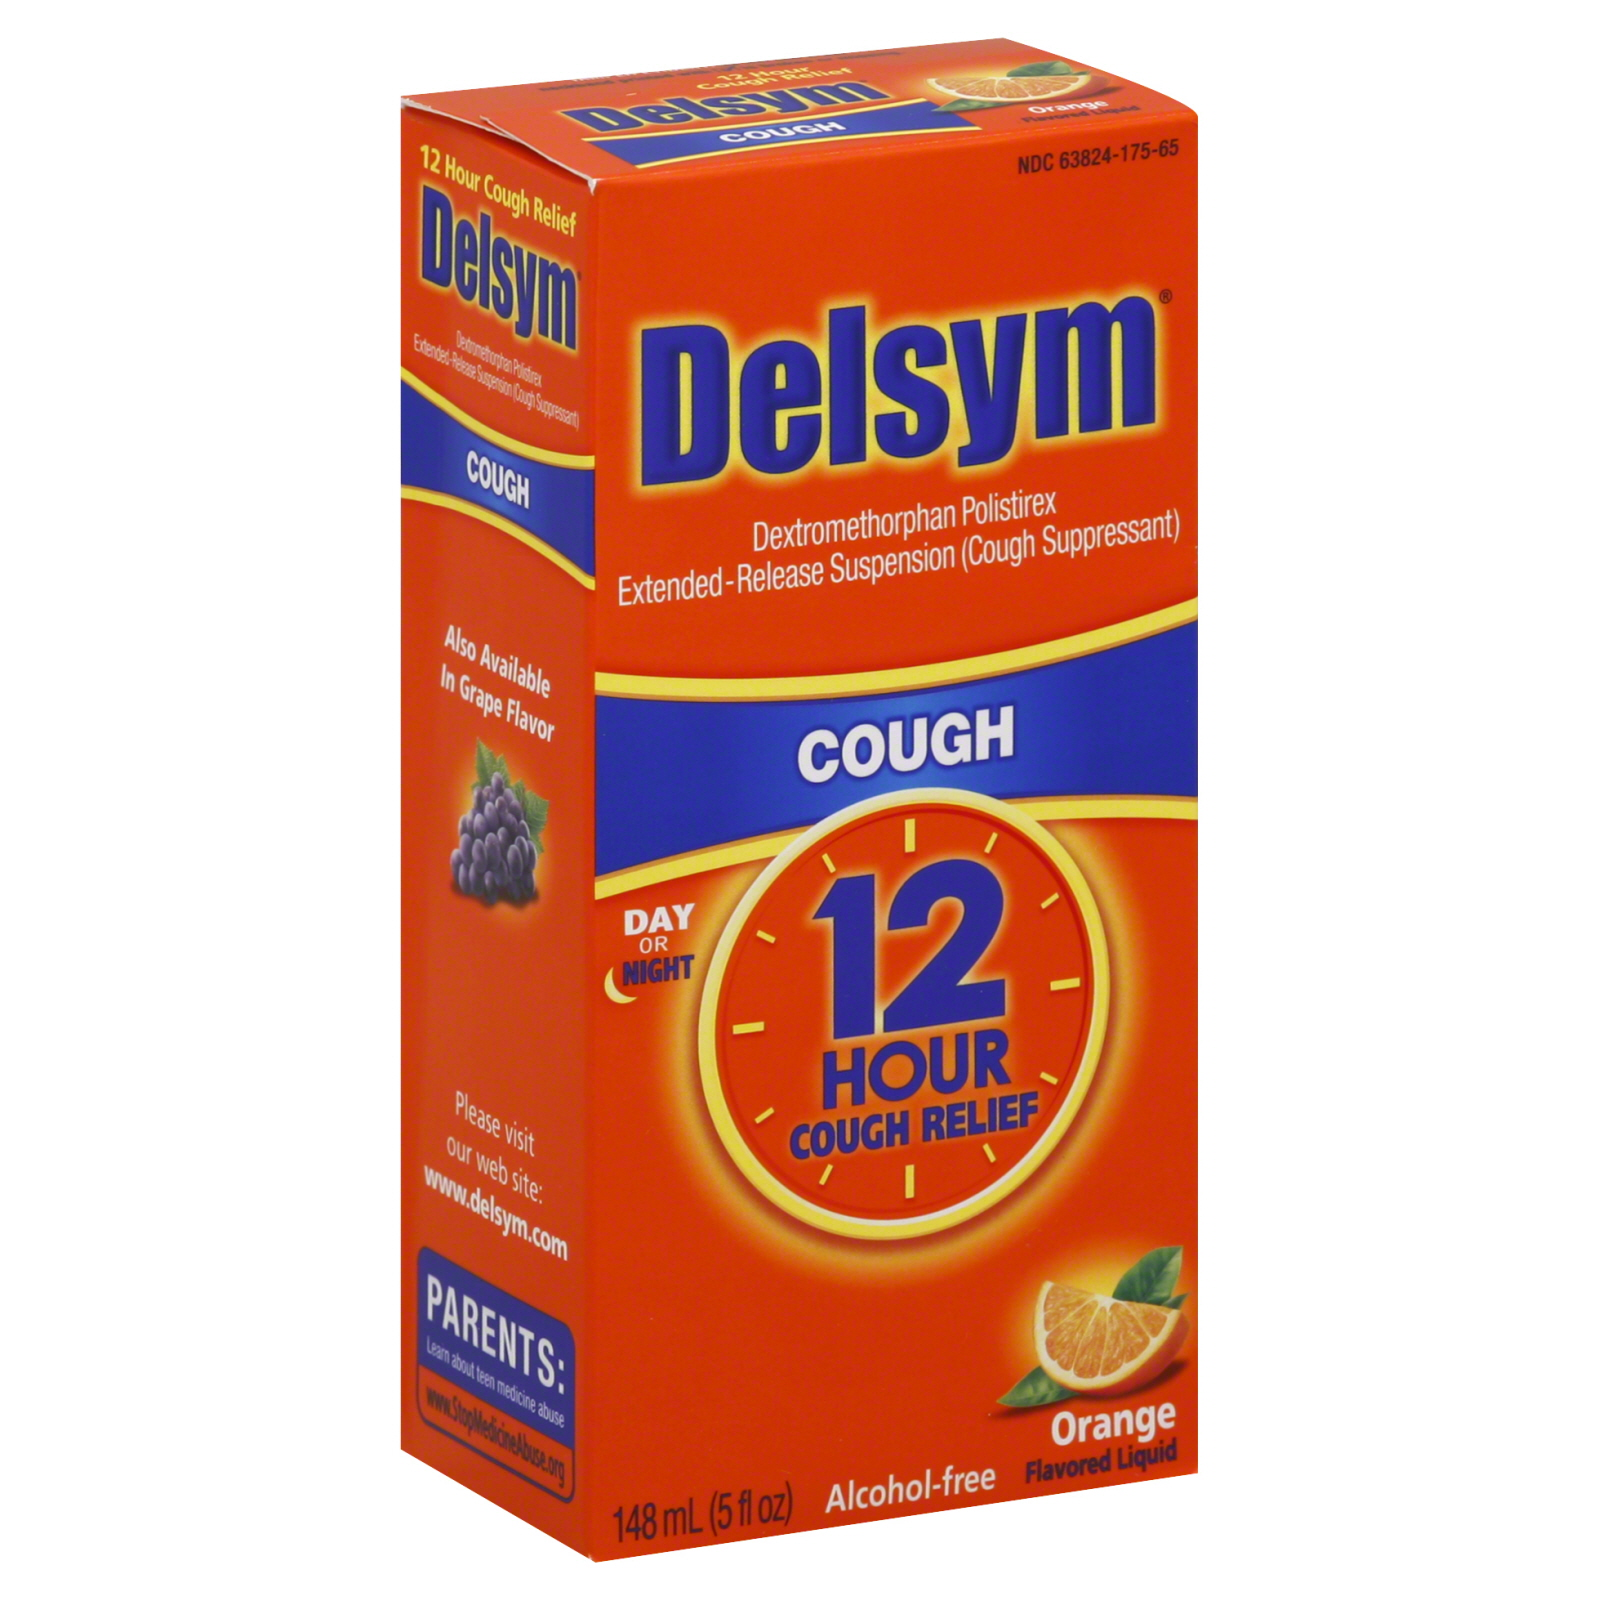 Delsym  Cough, Orange Flavored Liquid, 5